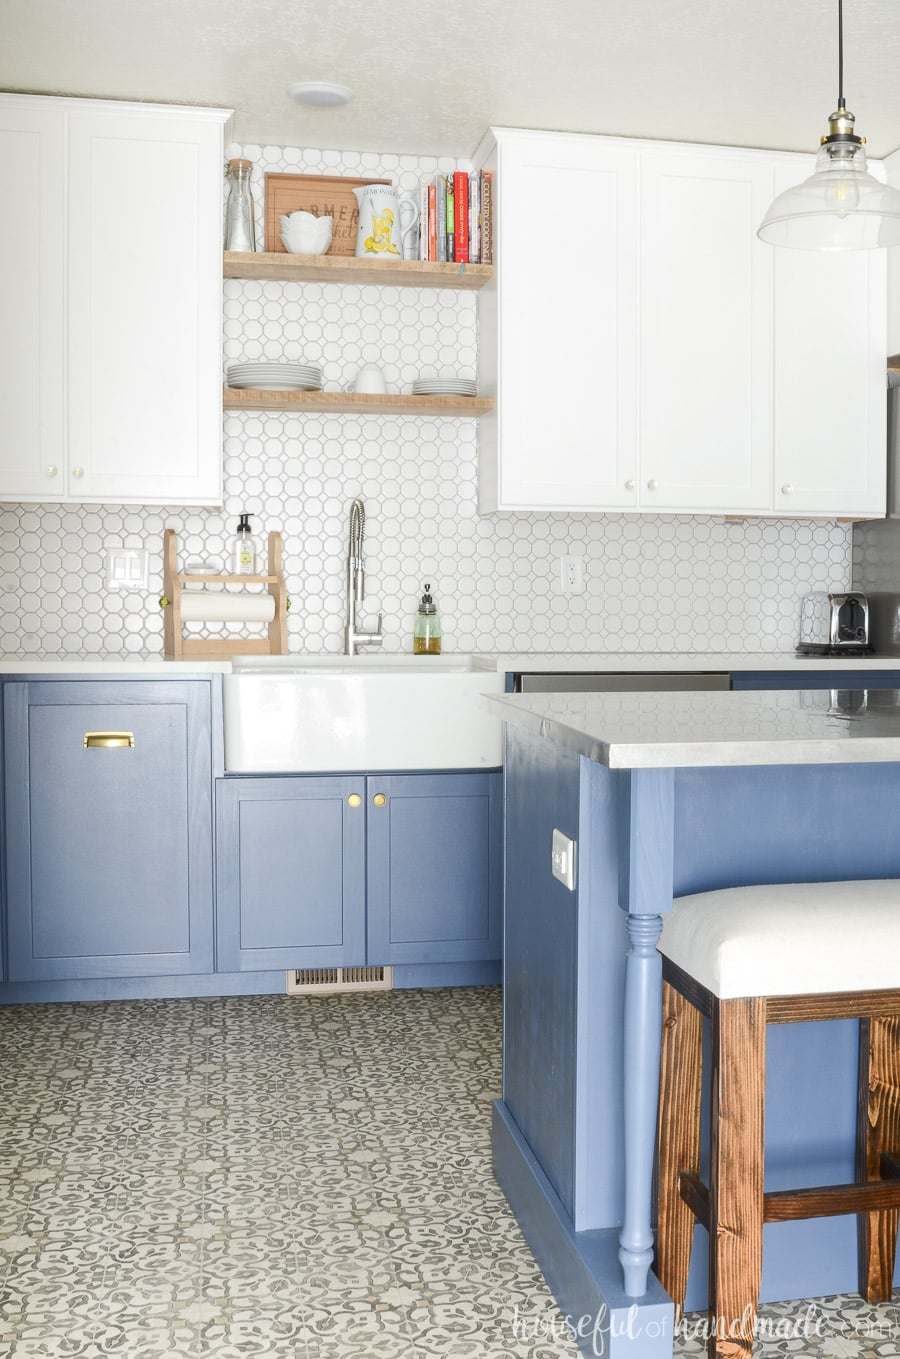 Beautiful farmhouse kitchen with blue & white cabinets and a large farmhouse kitchen sink.